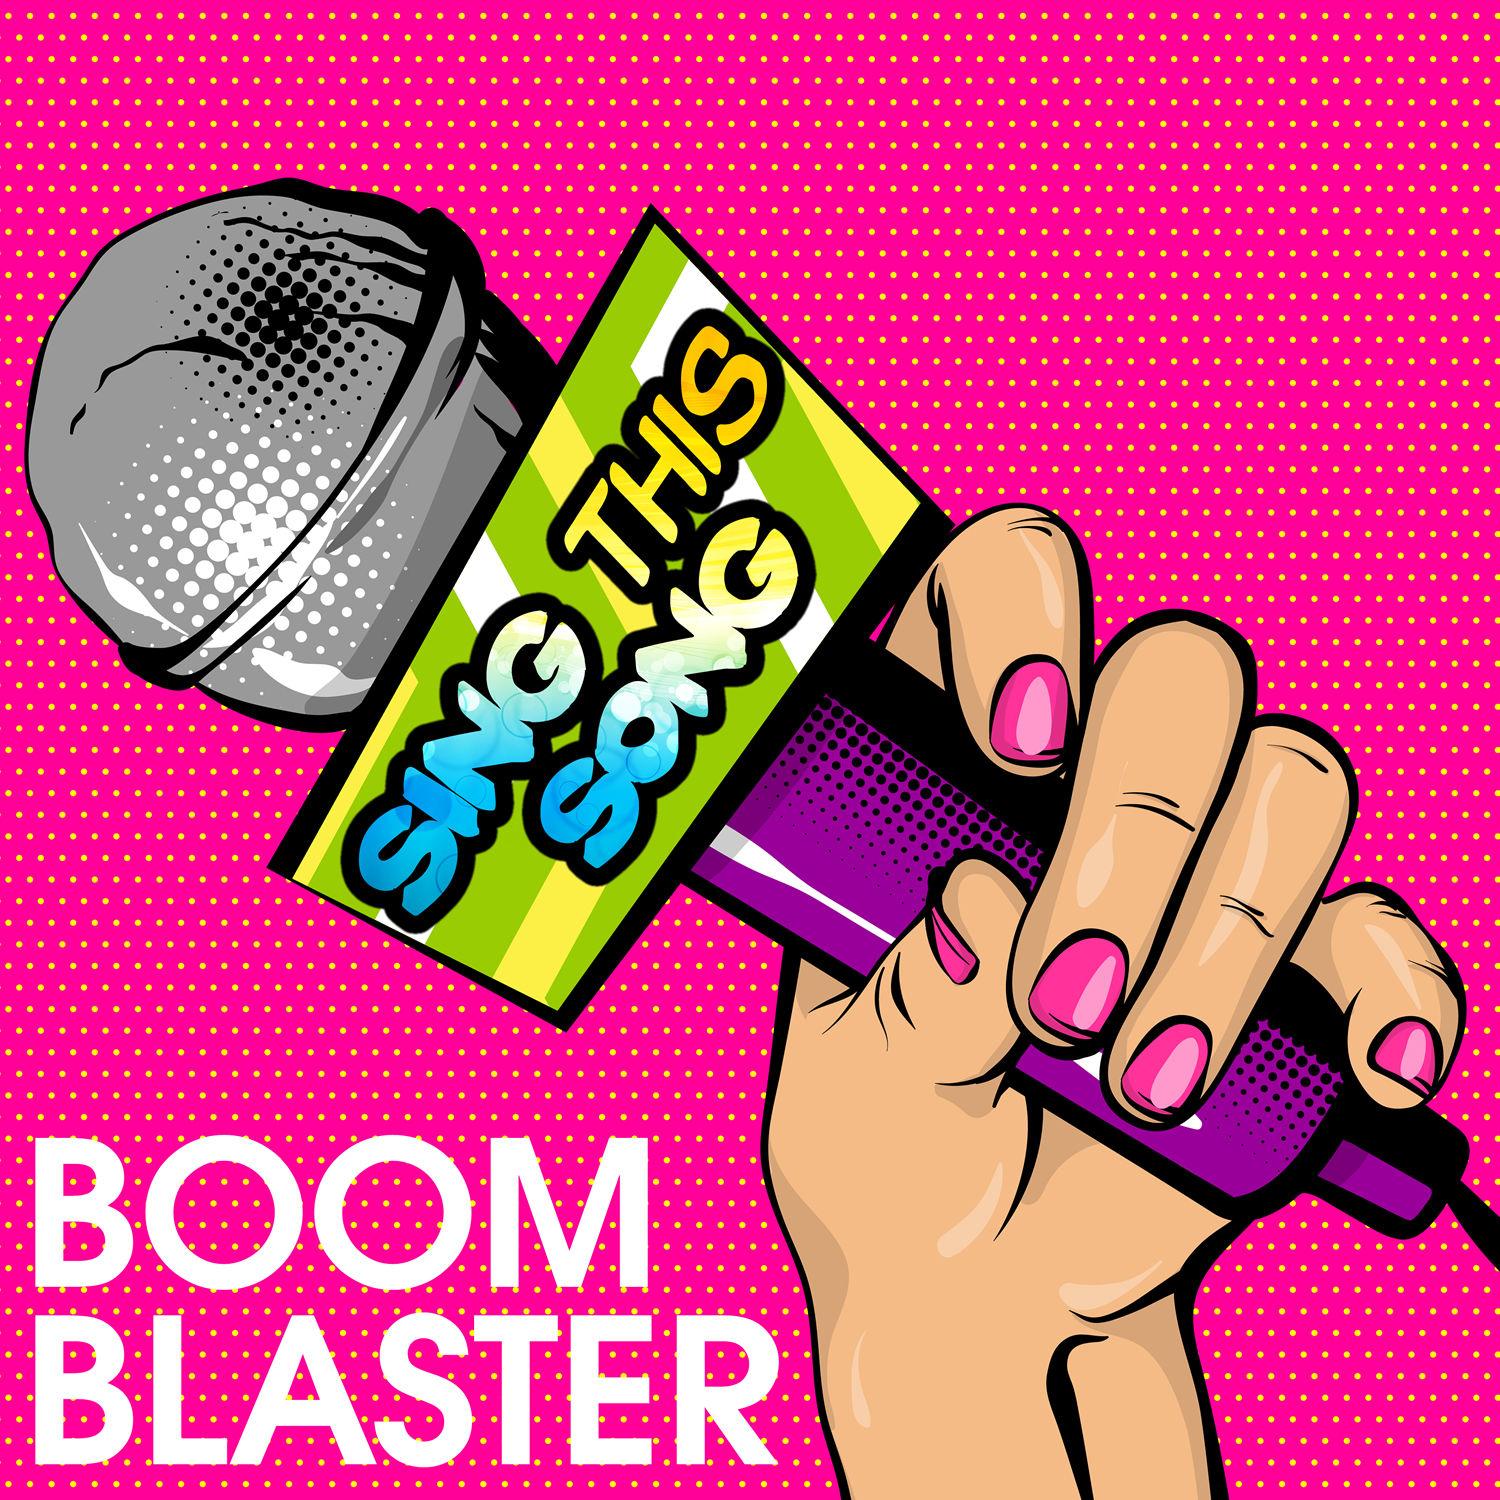 BoomBlaster - Sing this song